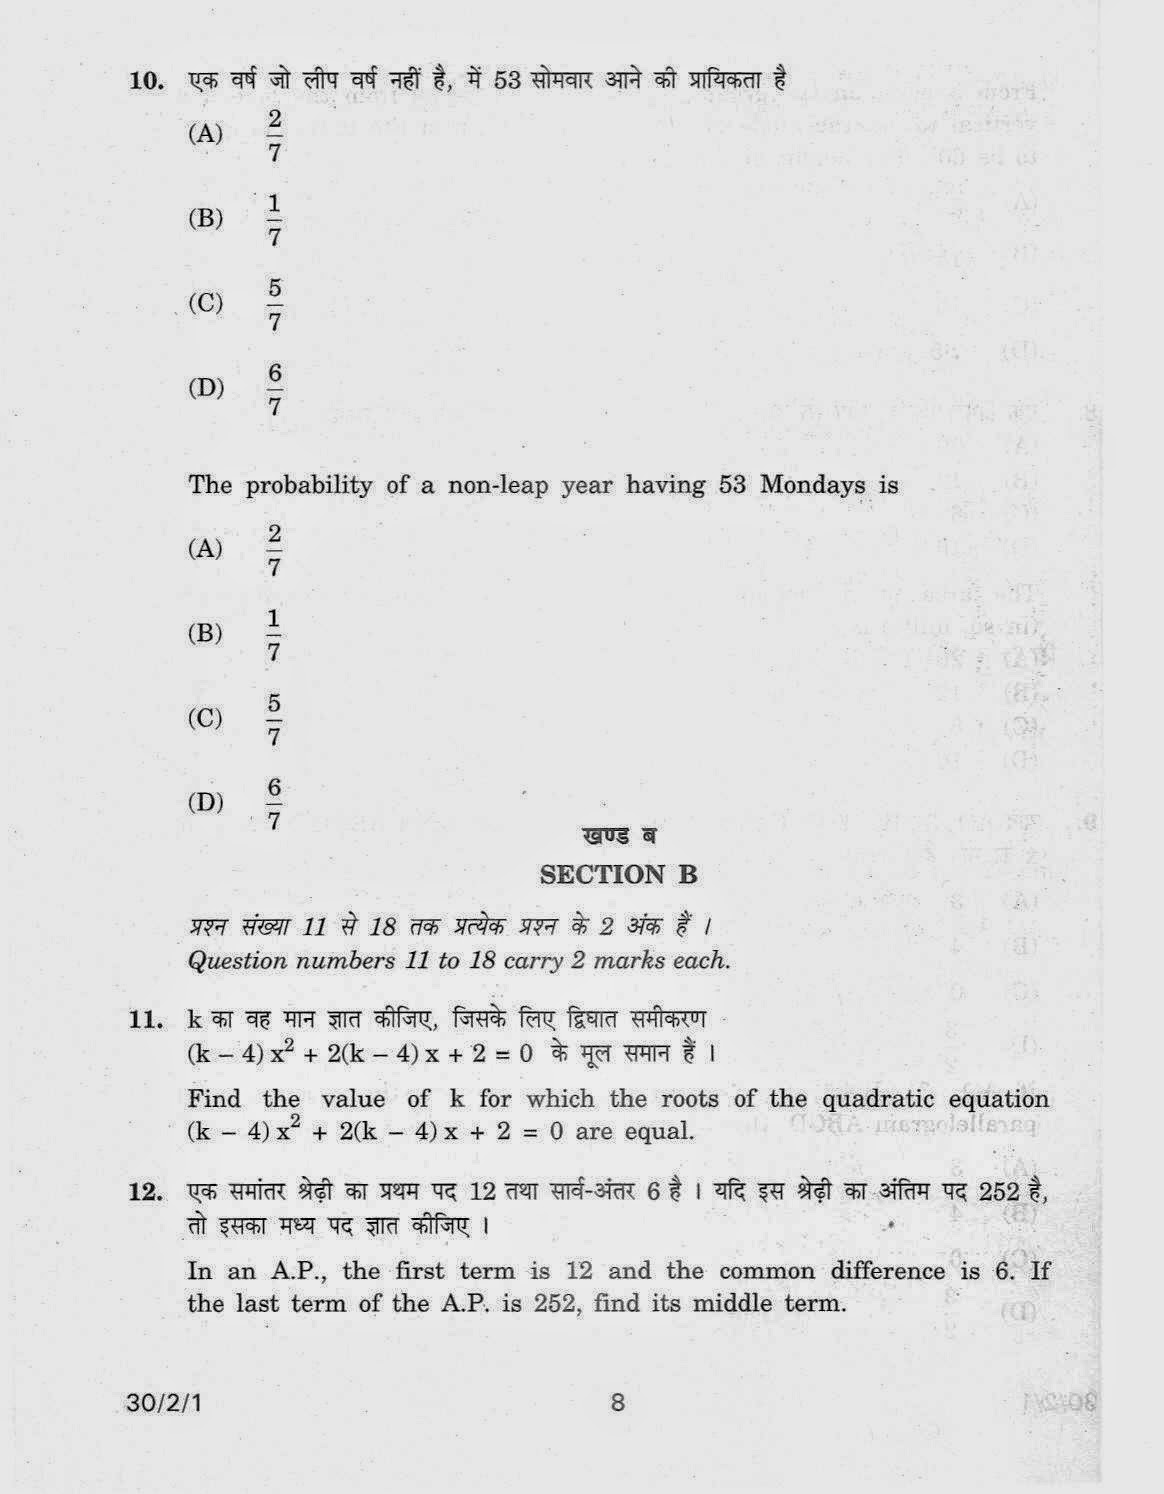 cbse class 10th mathematics question paper 2012 set-3